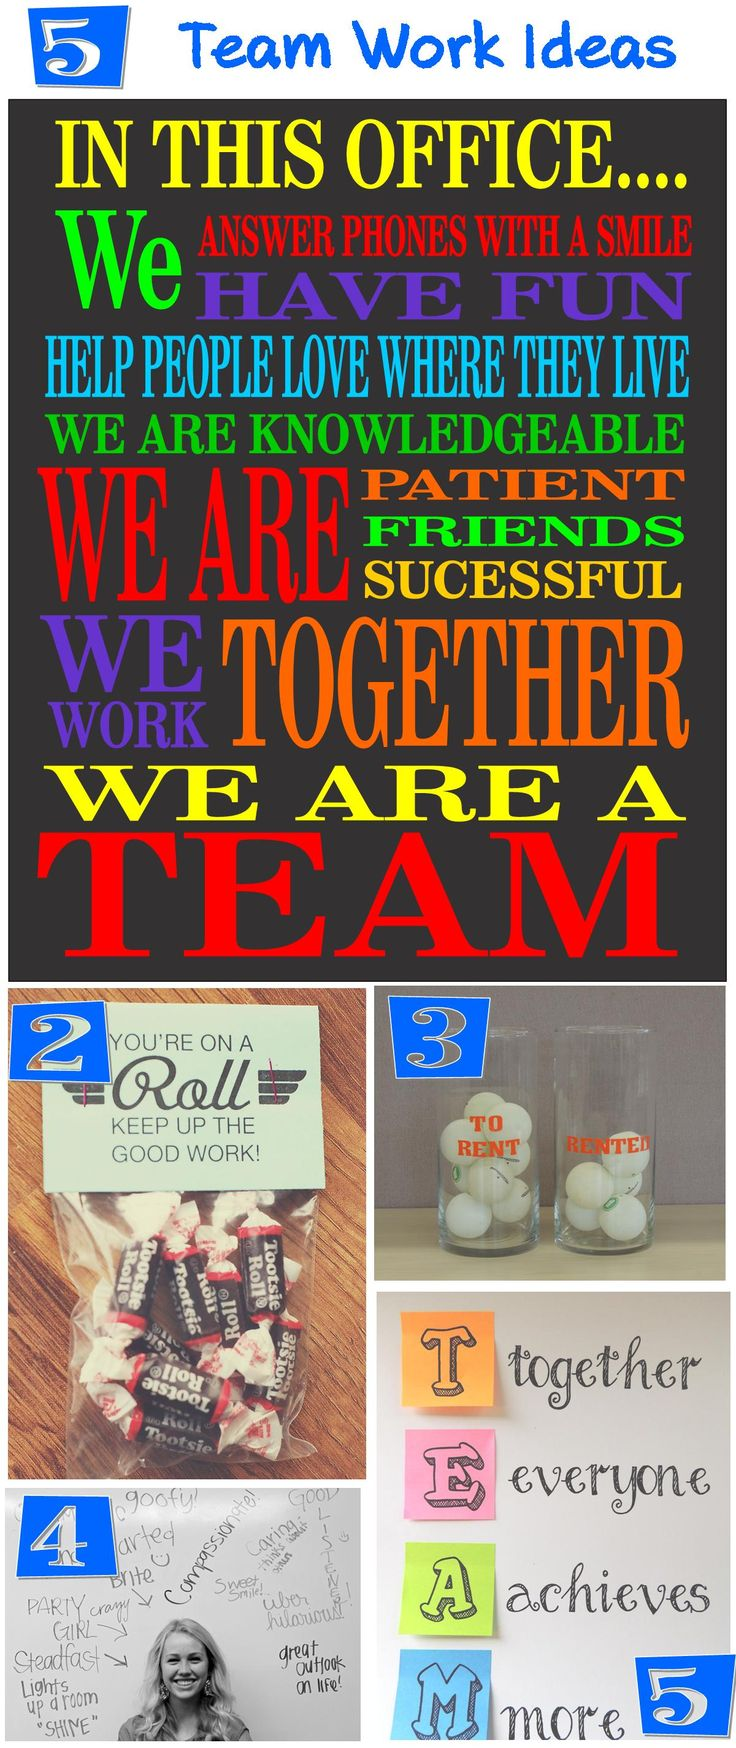 The ONLY way to have a very productive and fun place to work is to make it that way. Take some time to identify goals and congratulate teammates on accomplishments. When you work as a team you re…